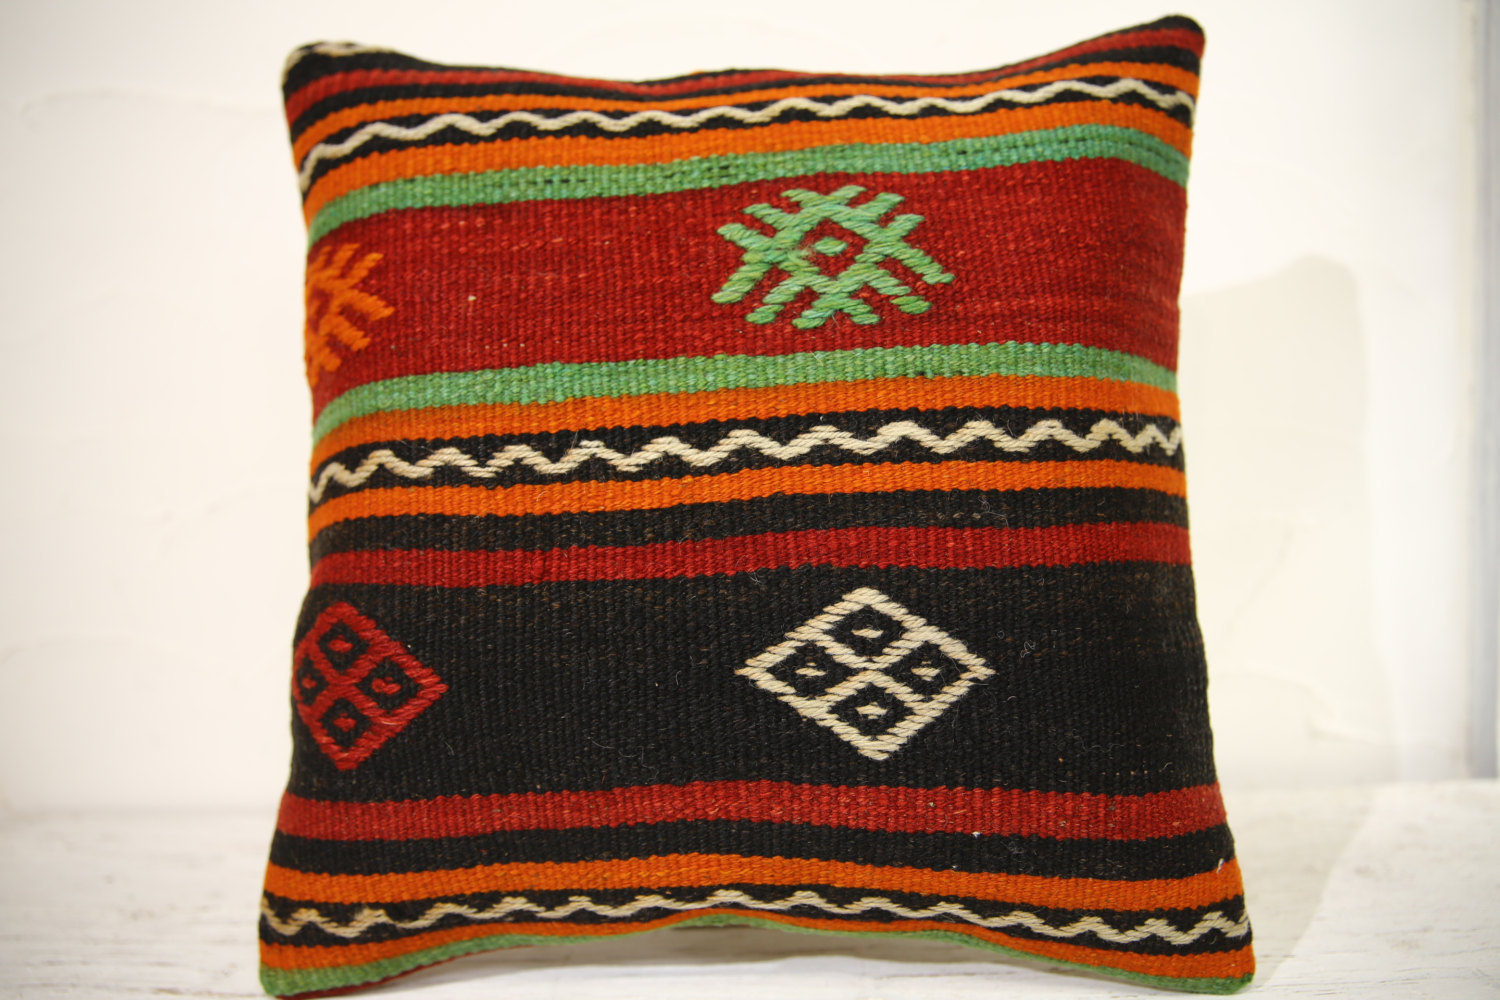 Kilim Pillows | 16x16 | Decorative Pillows | 871 | Accent Pillows,turkish pillow